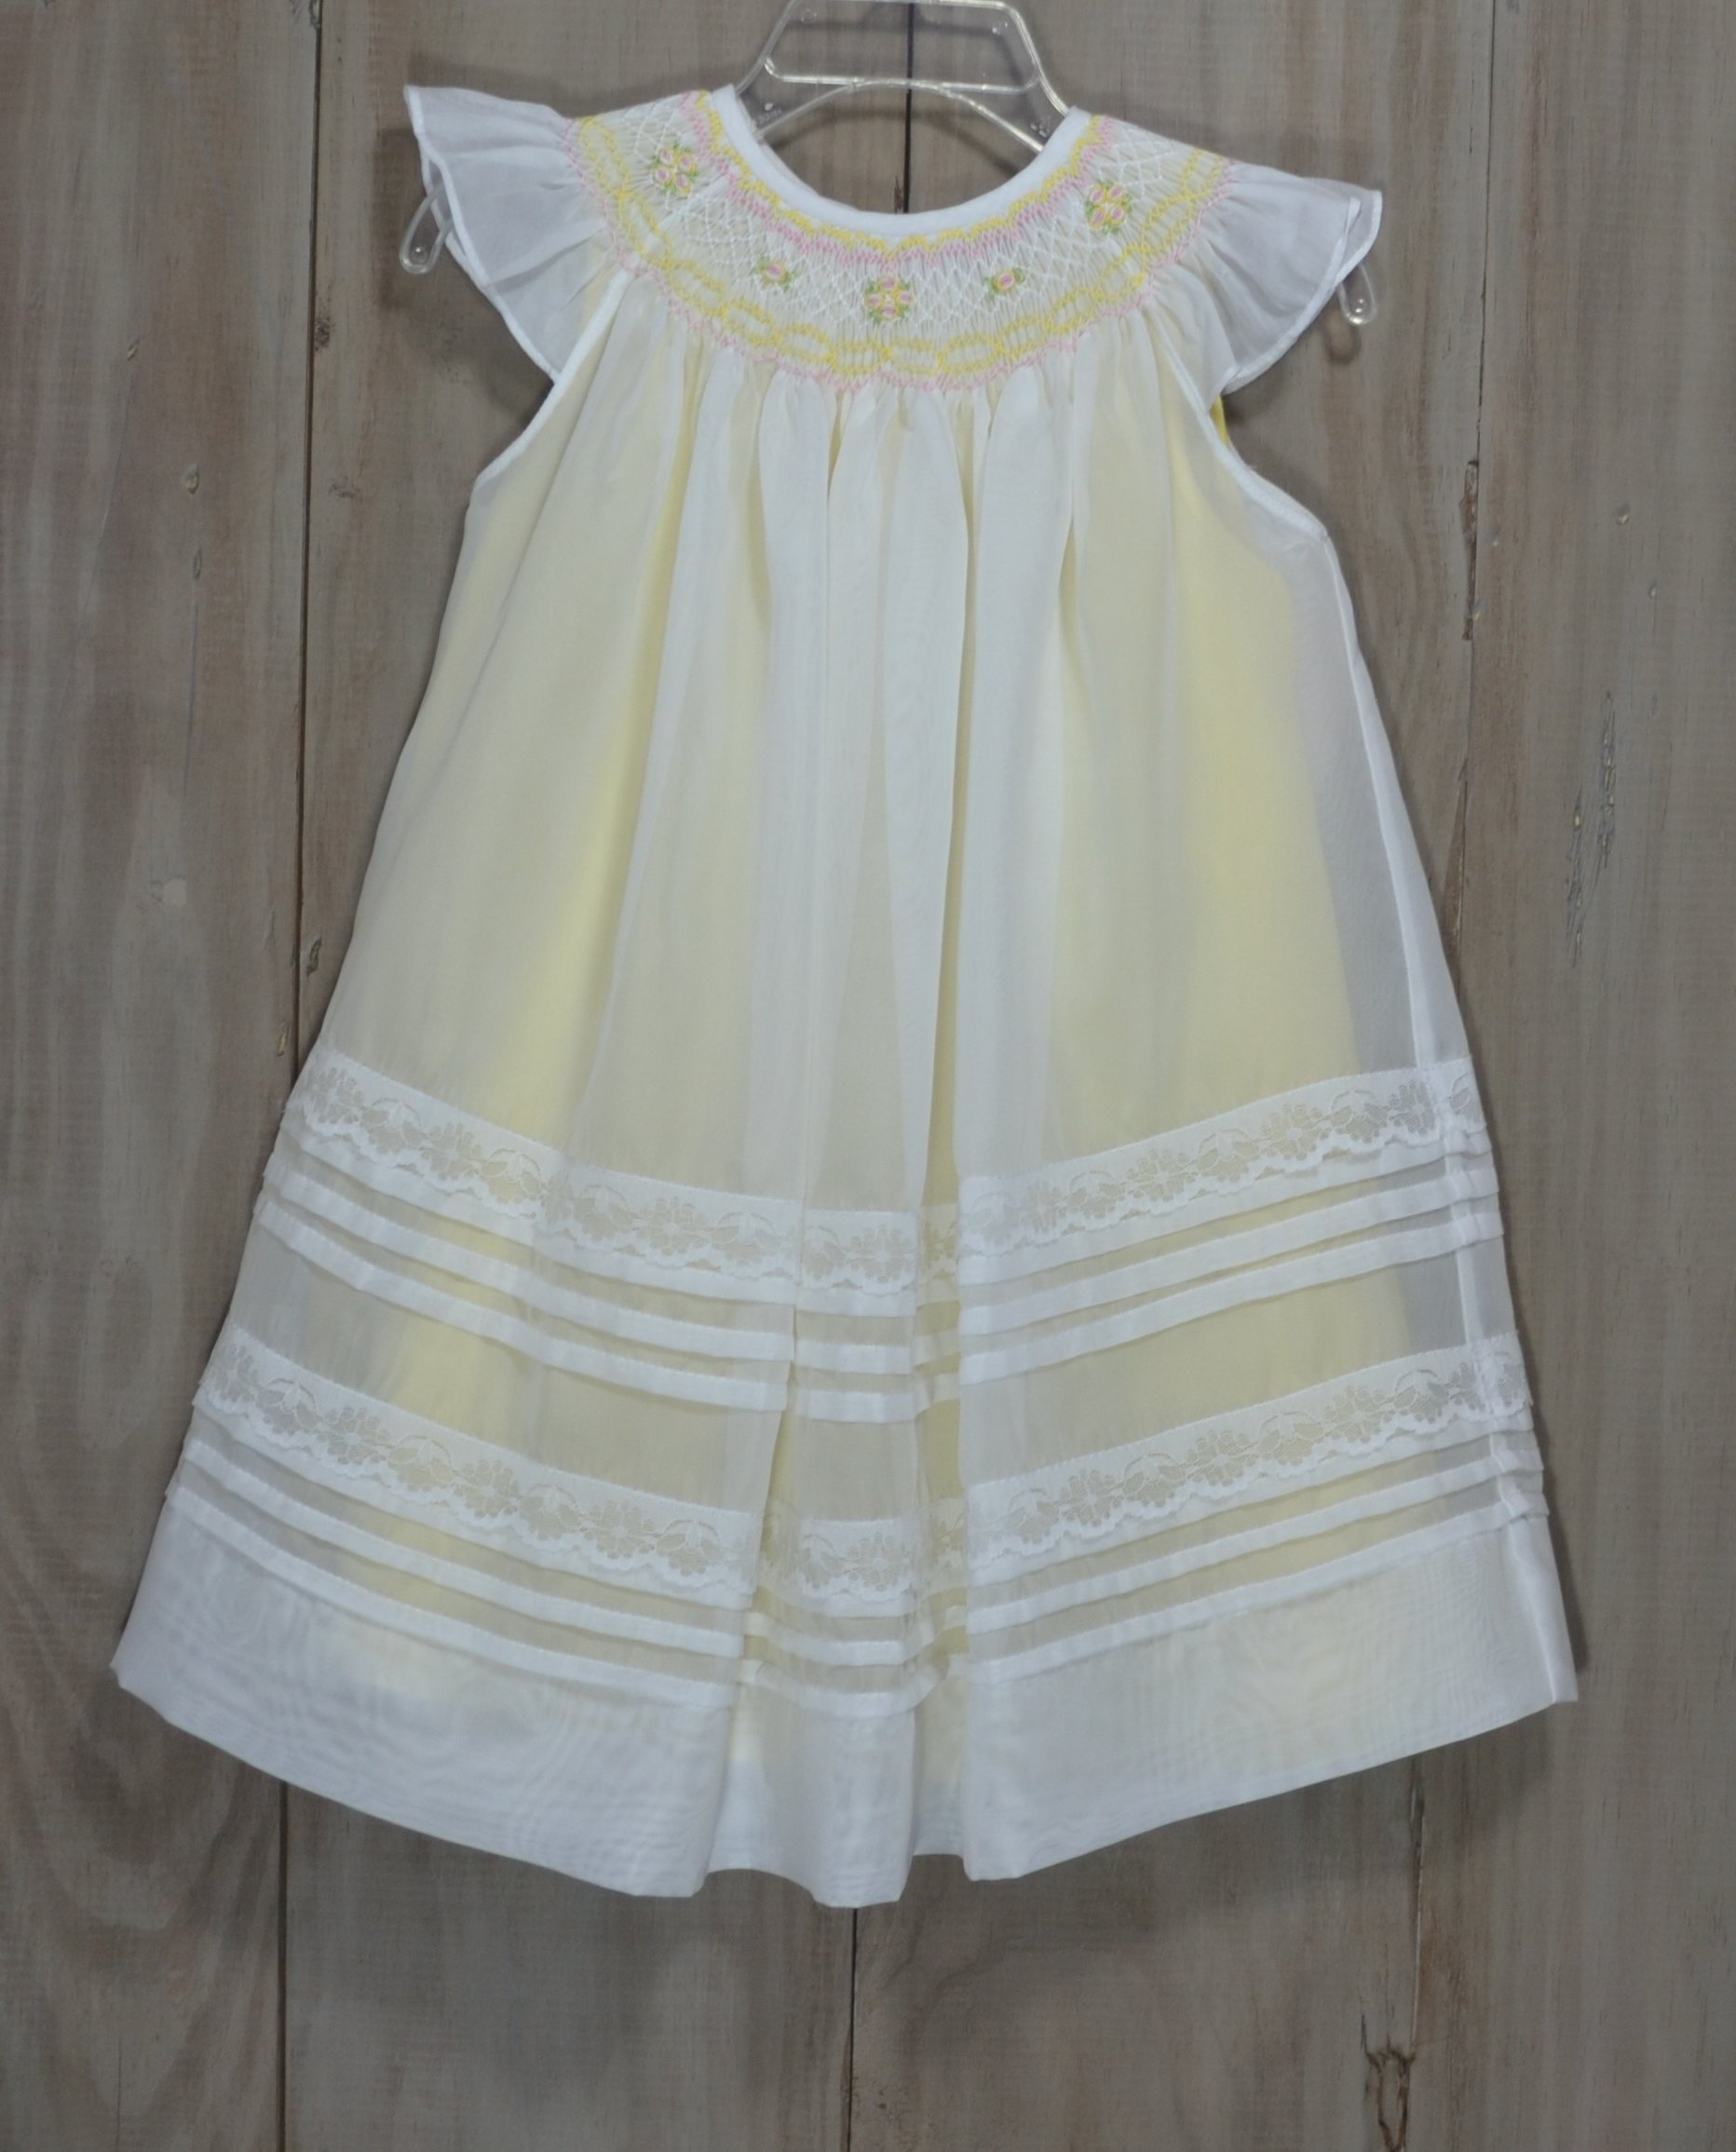 e63bb08ab925 Beautiful white organza sundress smocked in yellow and pink with a yellow  slip underneath. The